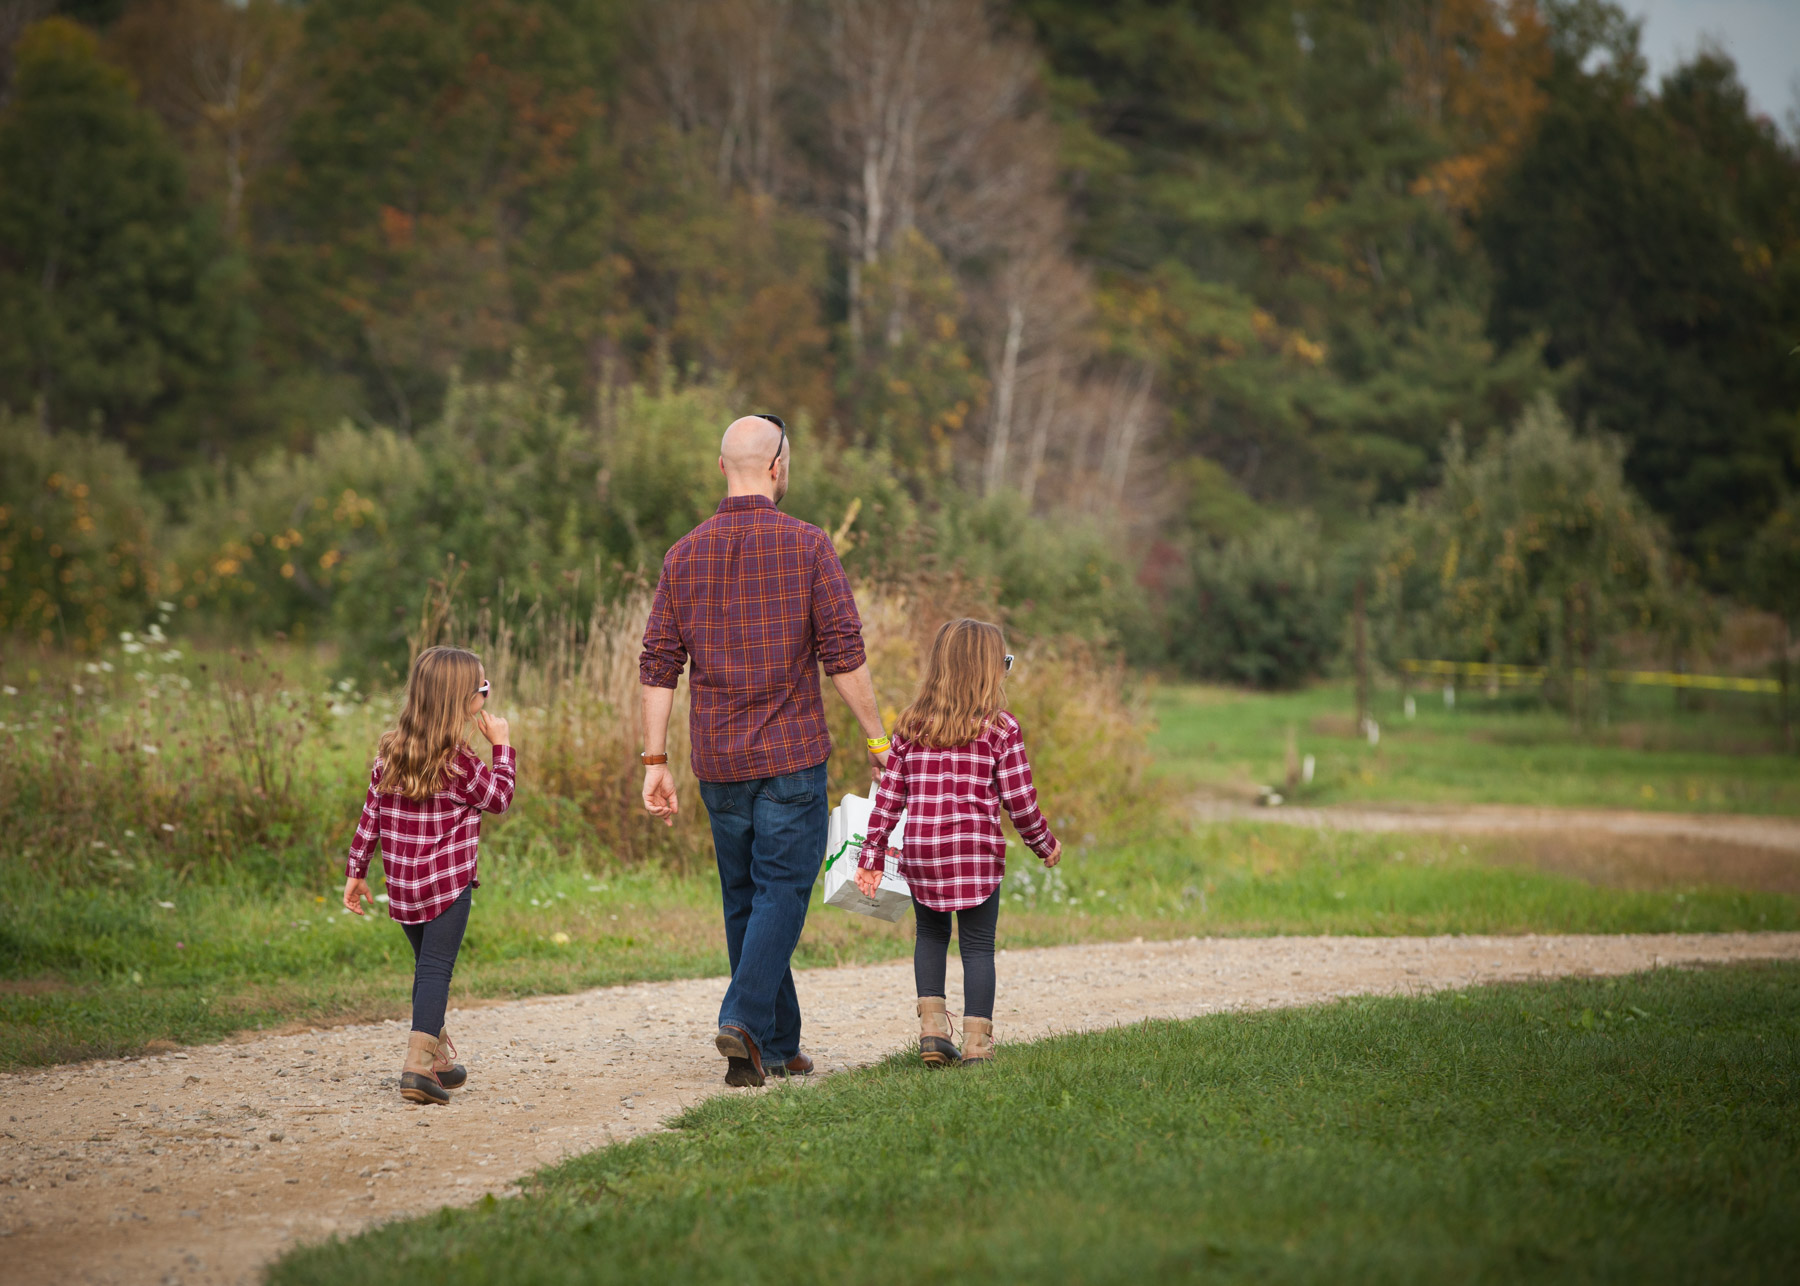 Dad and his daughters, all wearing jeans and red plaid flannel shirts, walk down a dirt path towards an apple orchard.